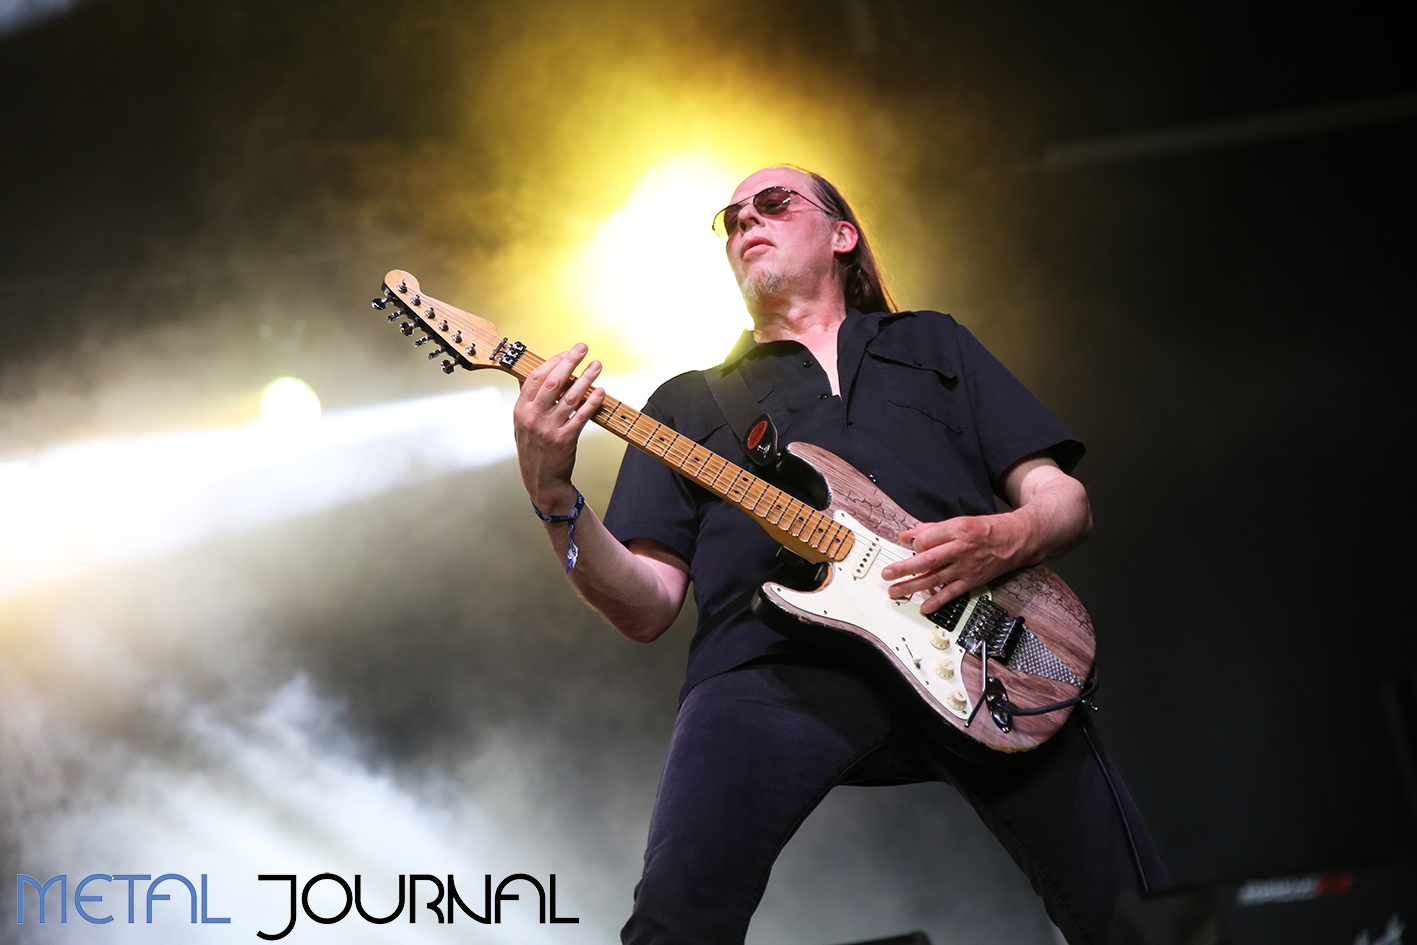 candlemass - metal journal rock fest barcelona 2019 pic 7